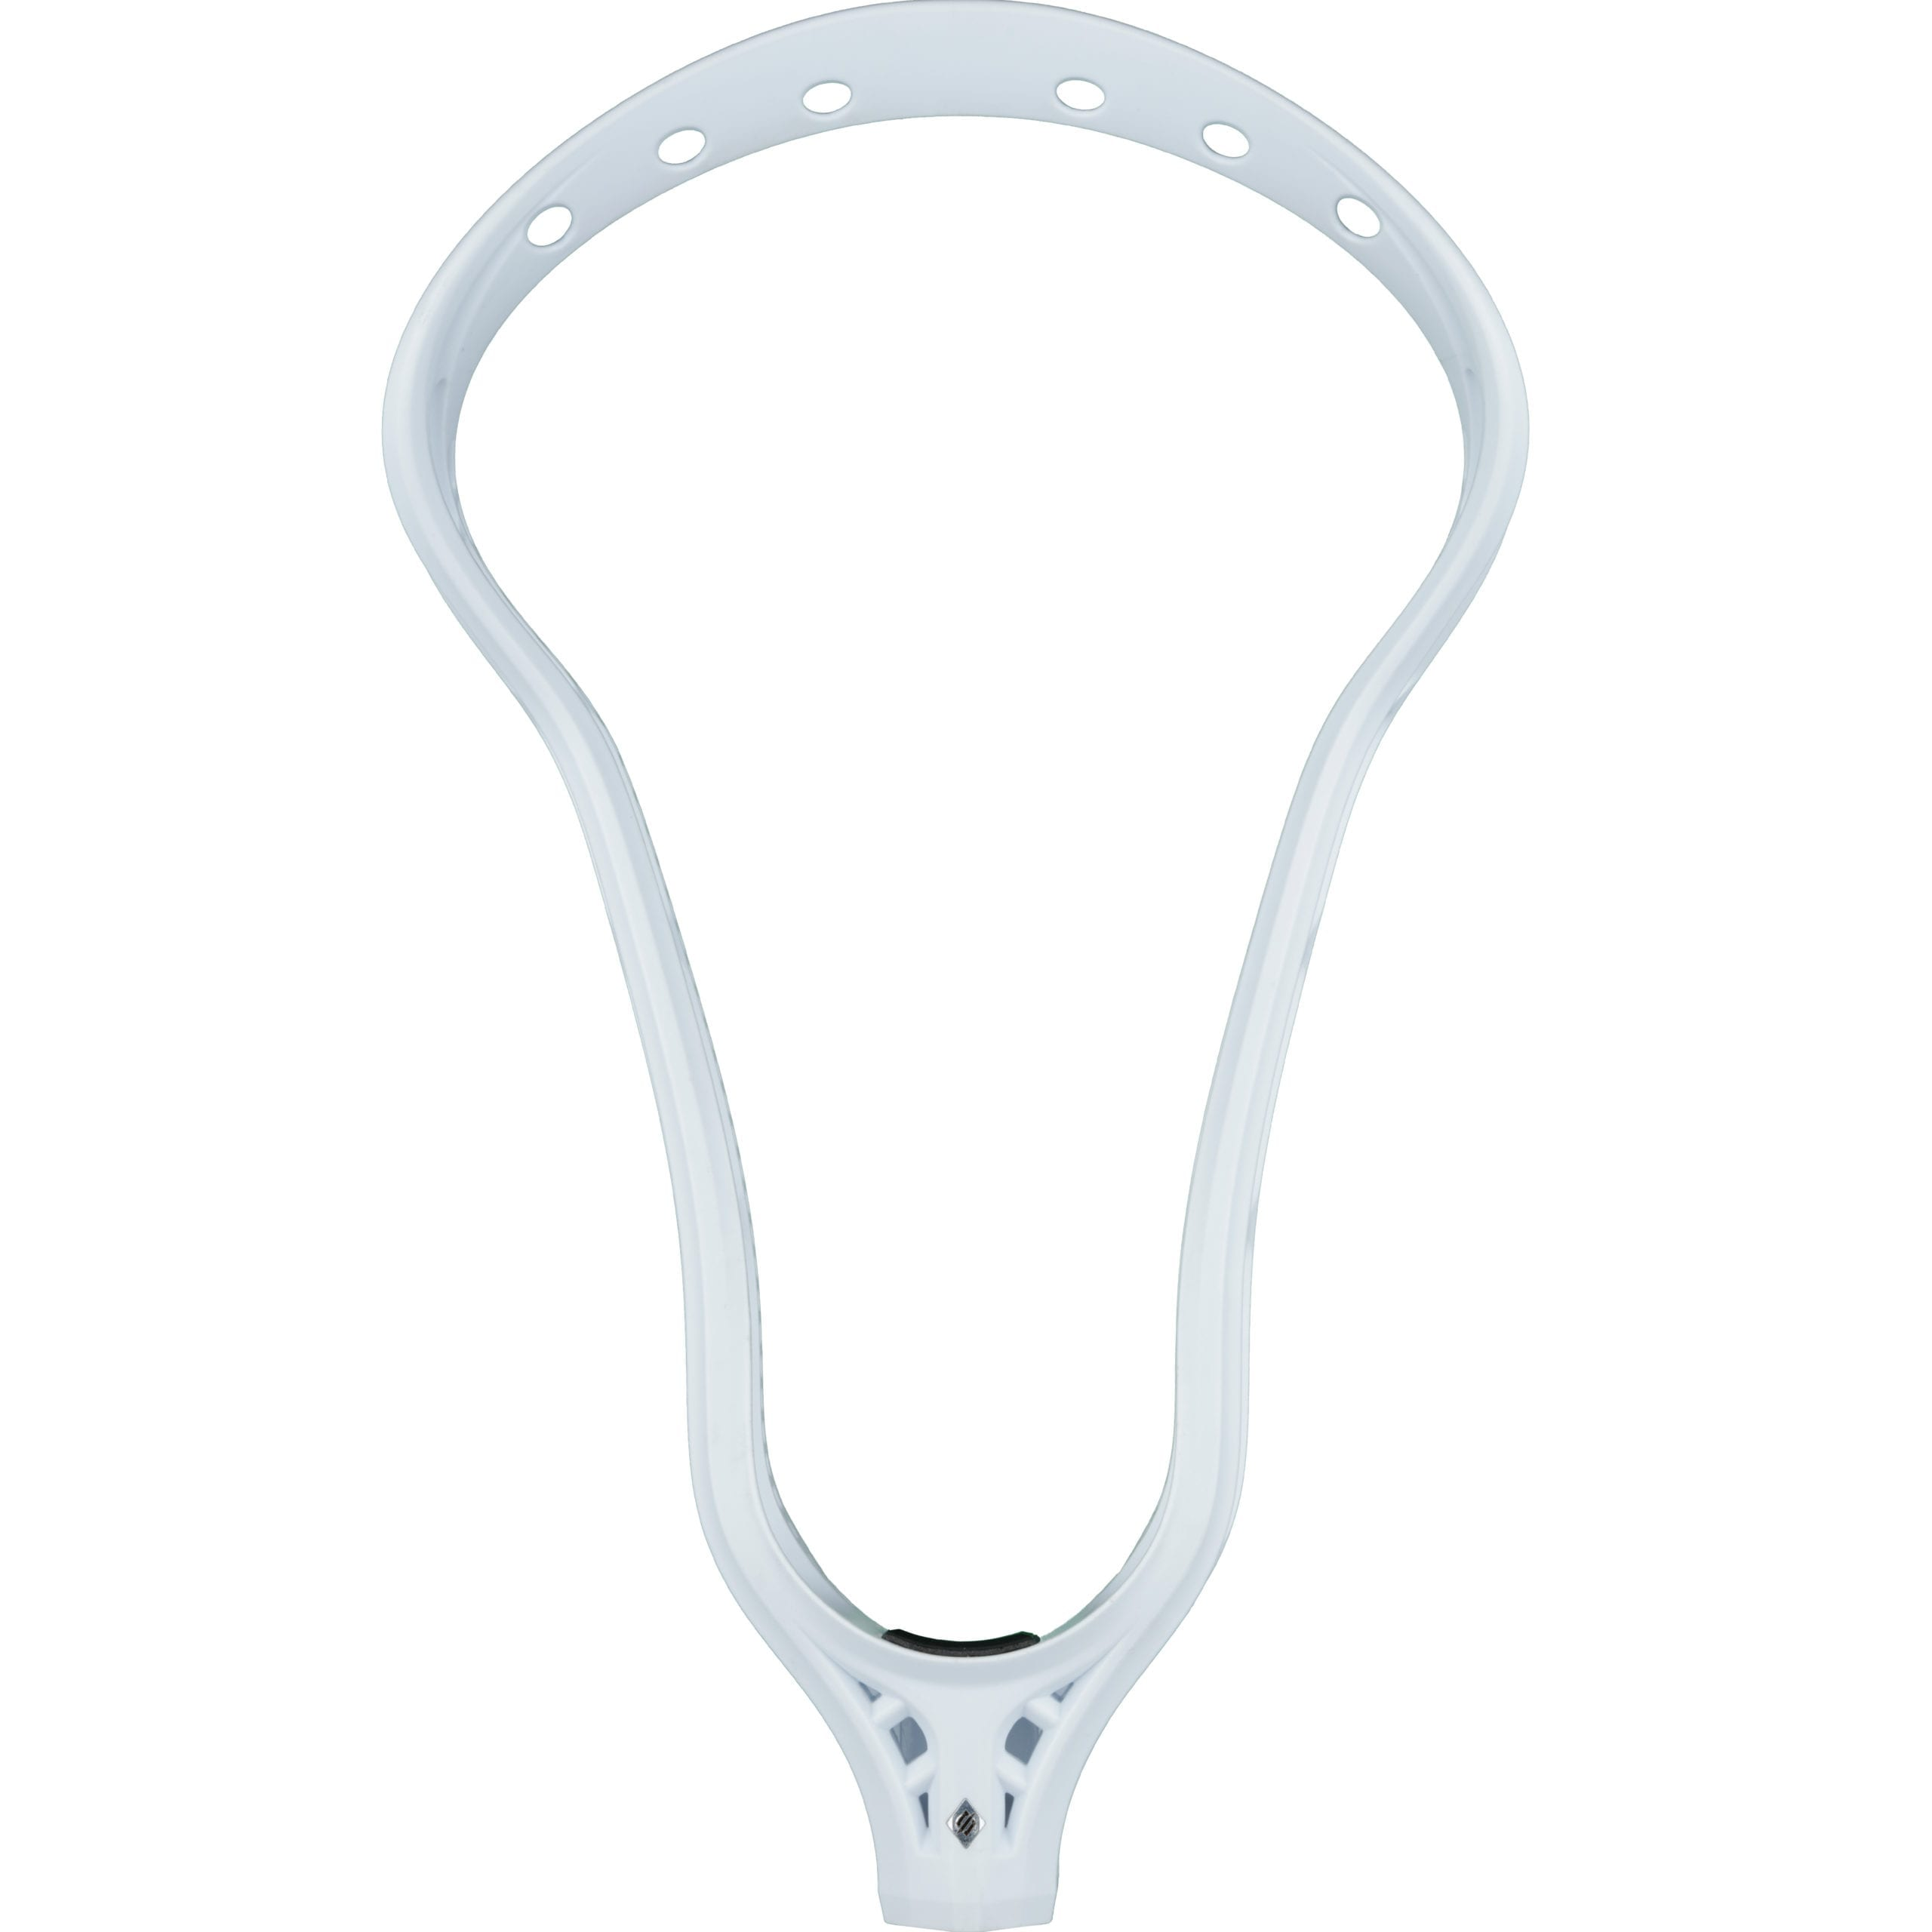 StringKing-Womens-Mark-2-Offense-Front-Unstrung-White4000-scaled-1.jpg